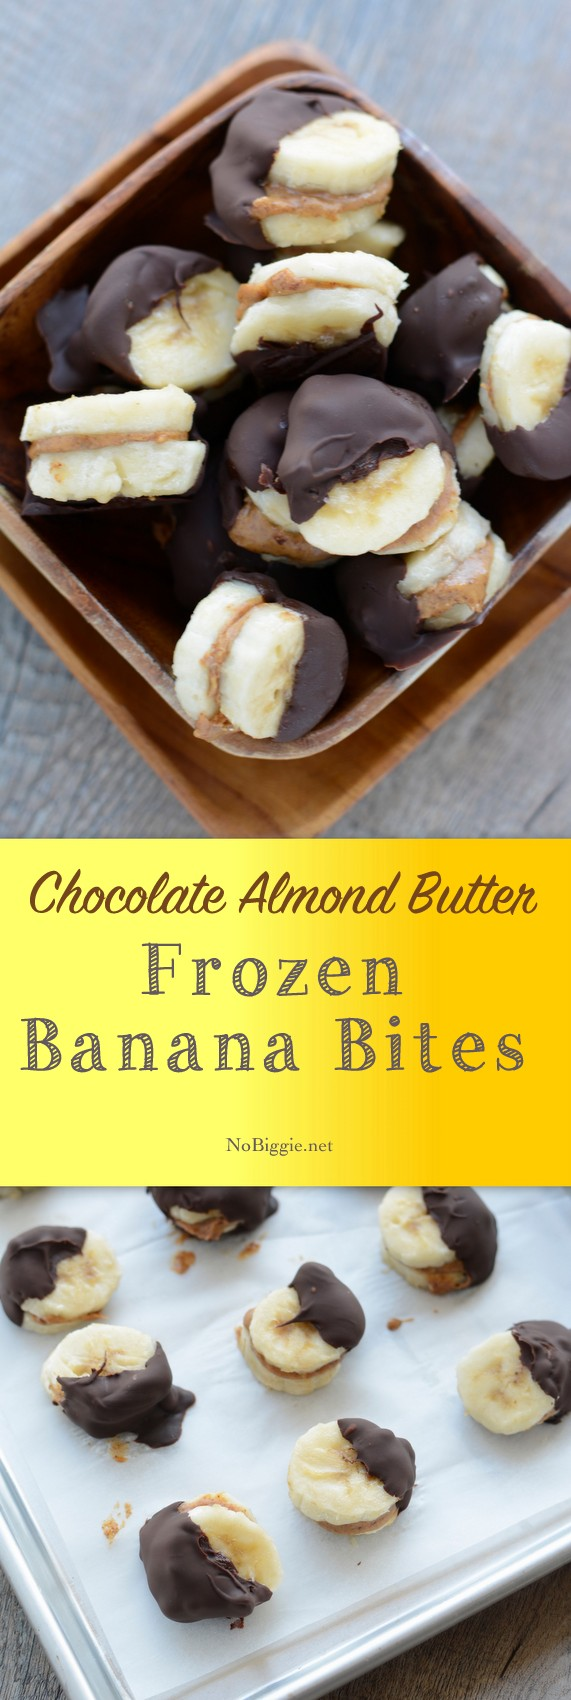 Frozen Banana Bites -  Next time you need a little snack, you\'ll have to try these frozen chocolate almond butter banana bites. They are super easy to make and so tasty. # Frozenbananabites #chocolate #almondbutter #glutenfree #dairyfree #healthysnacks